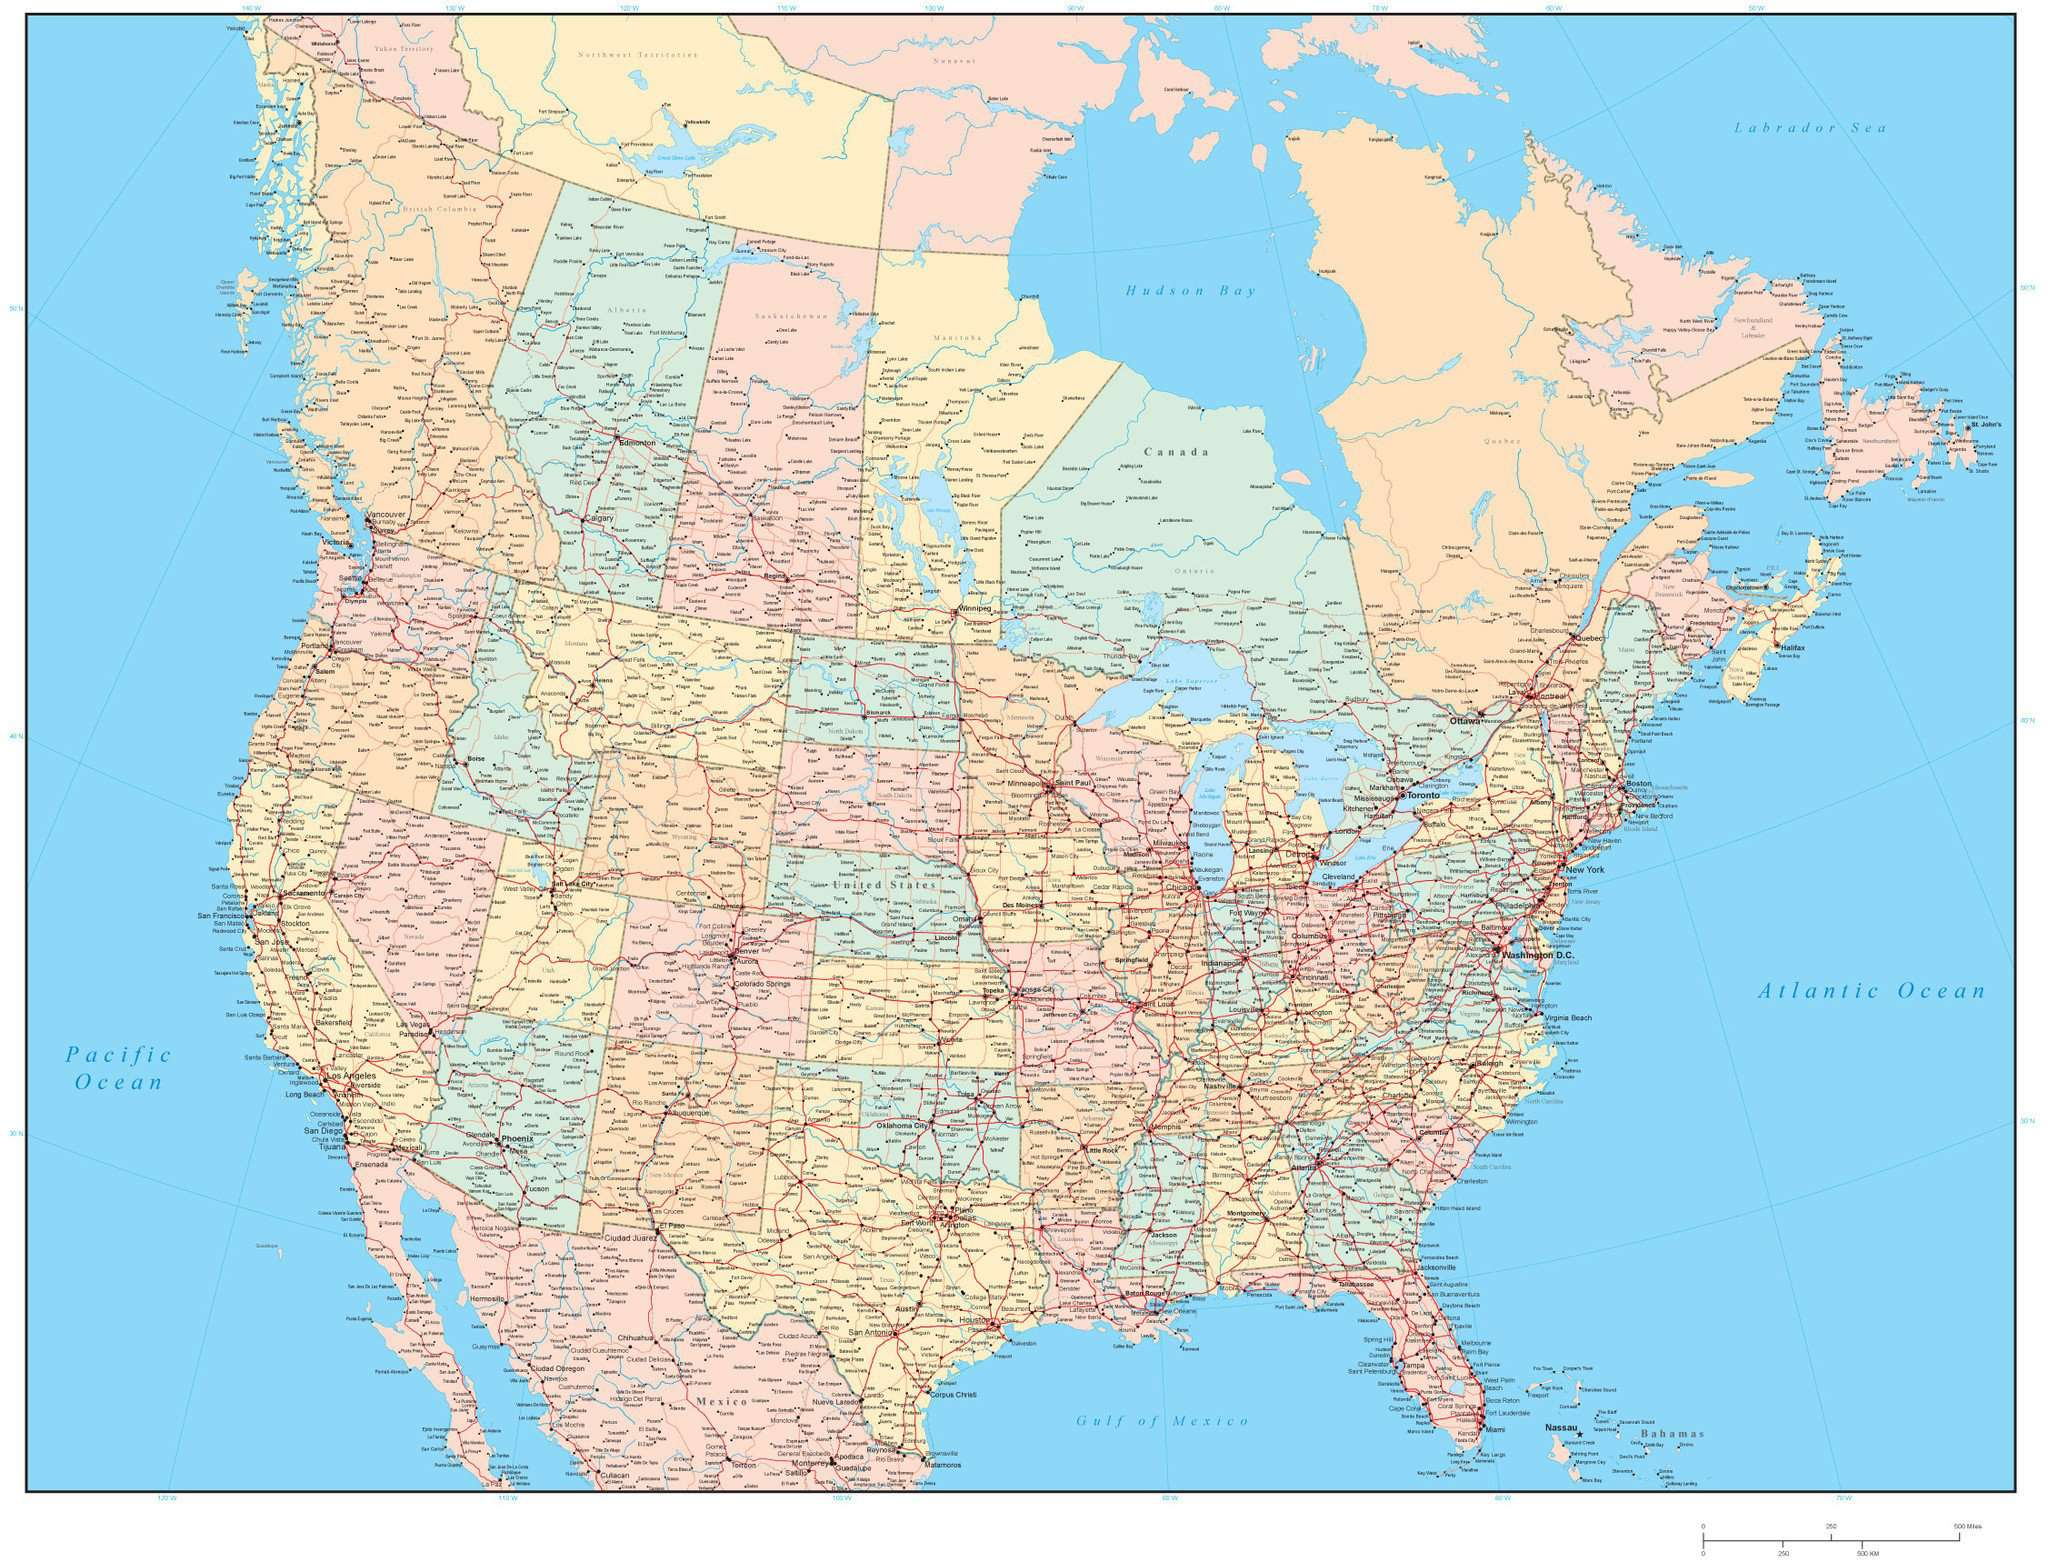 Usa And Canada Map With Major Cities Usa Get Free Image About - Usa map states and caps